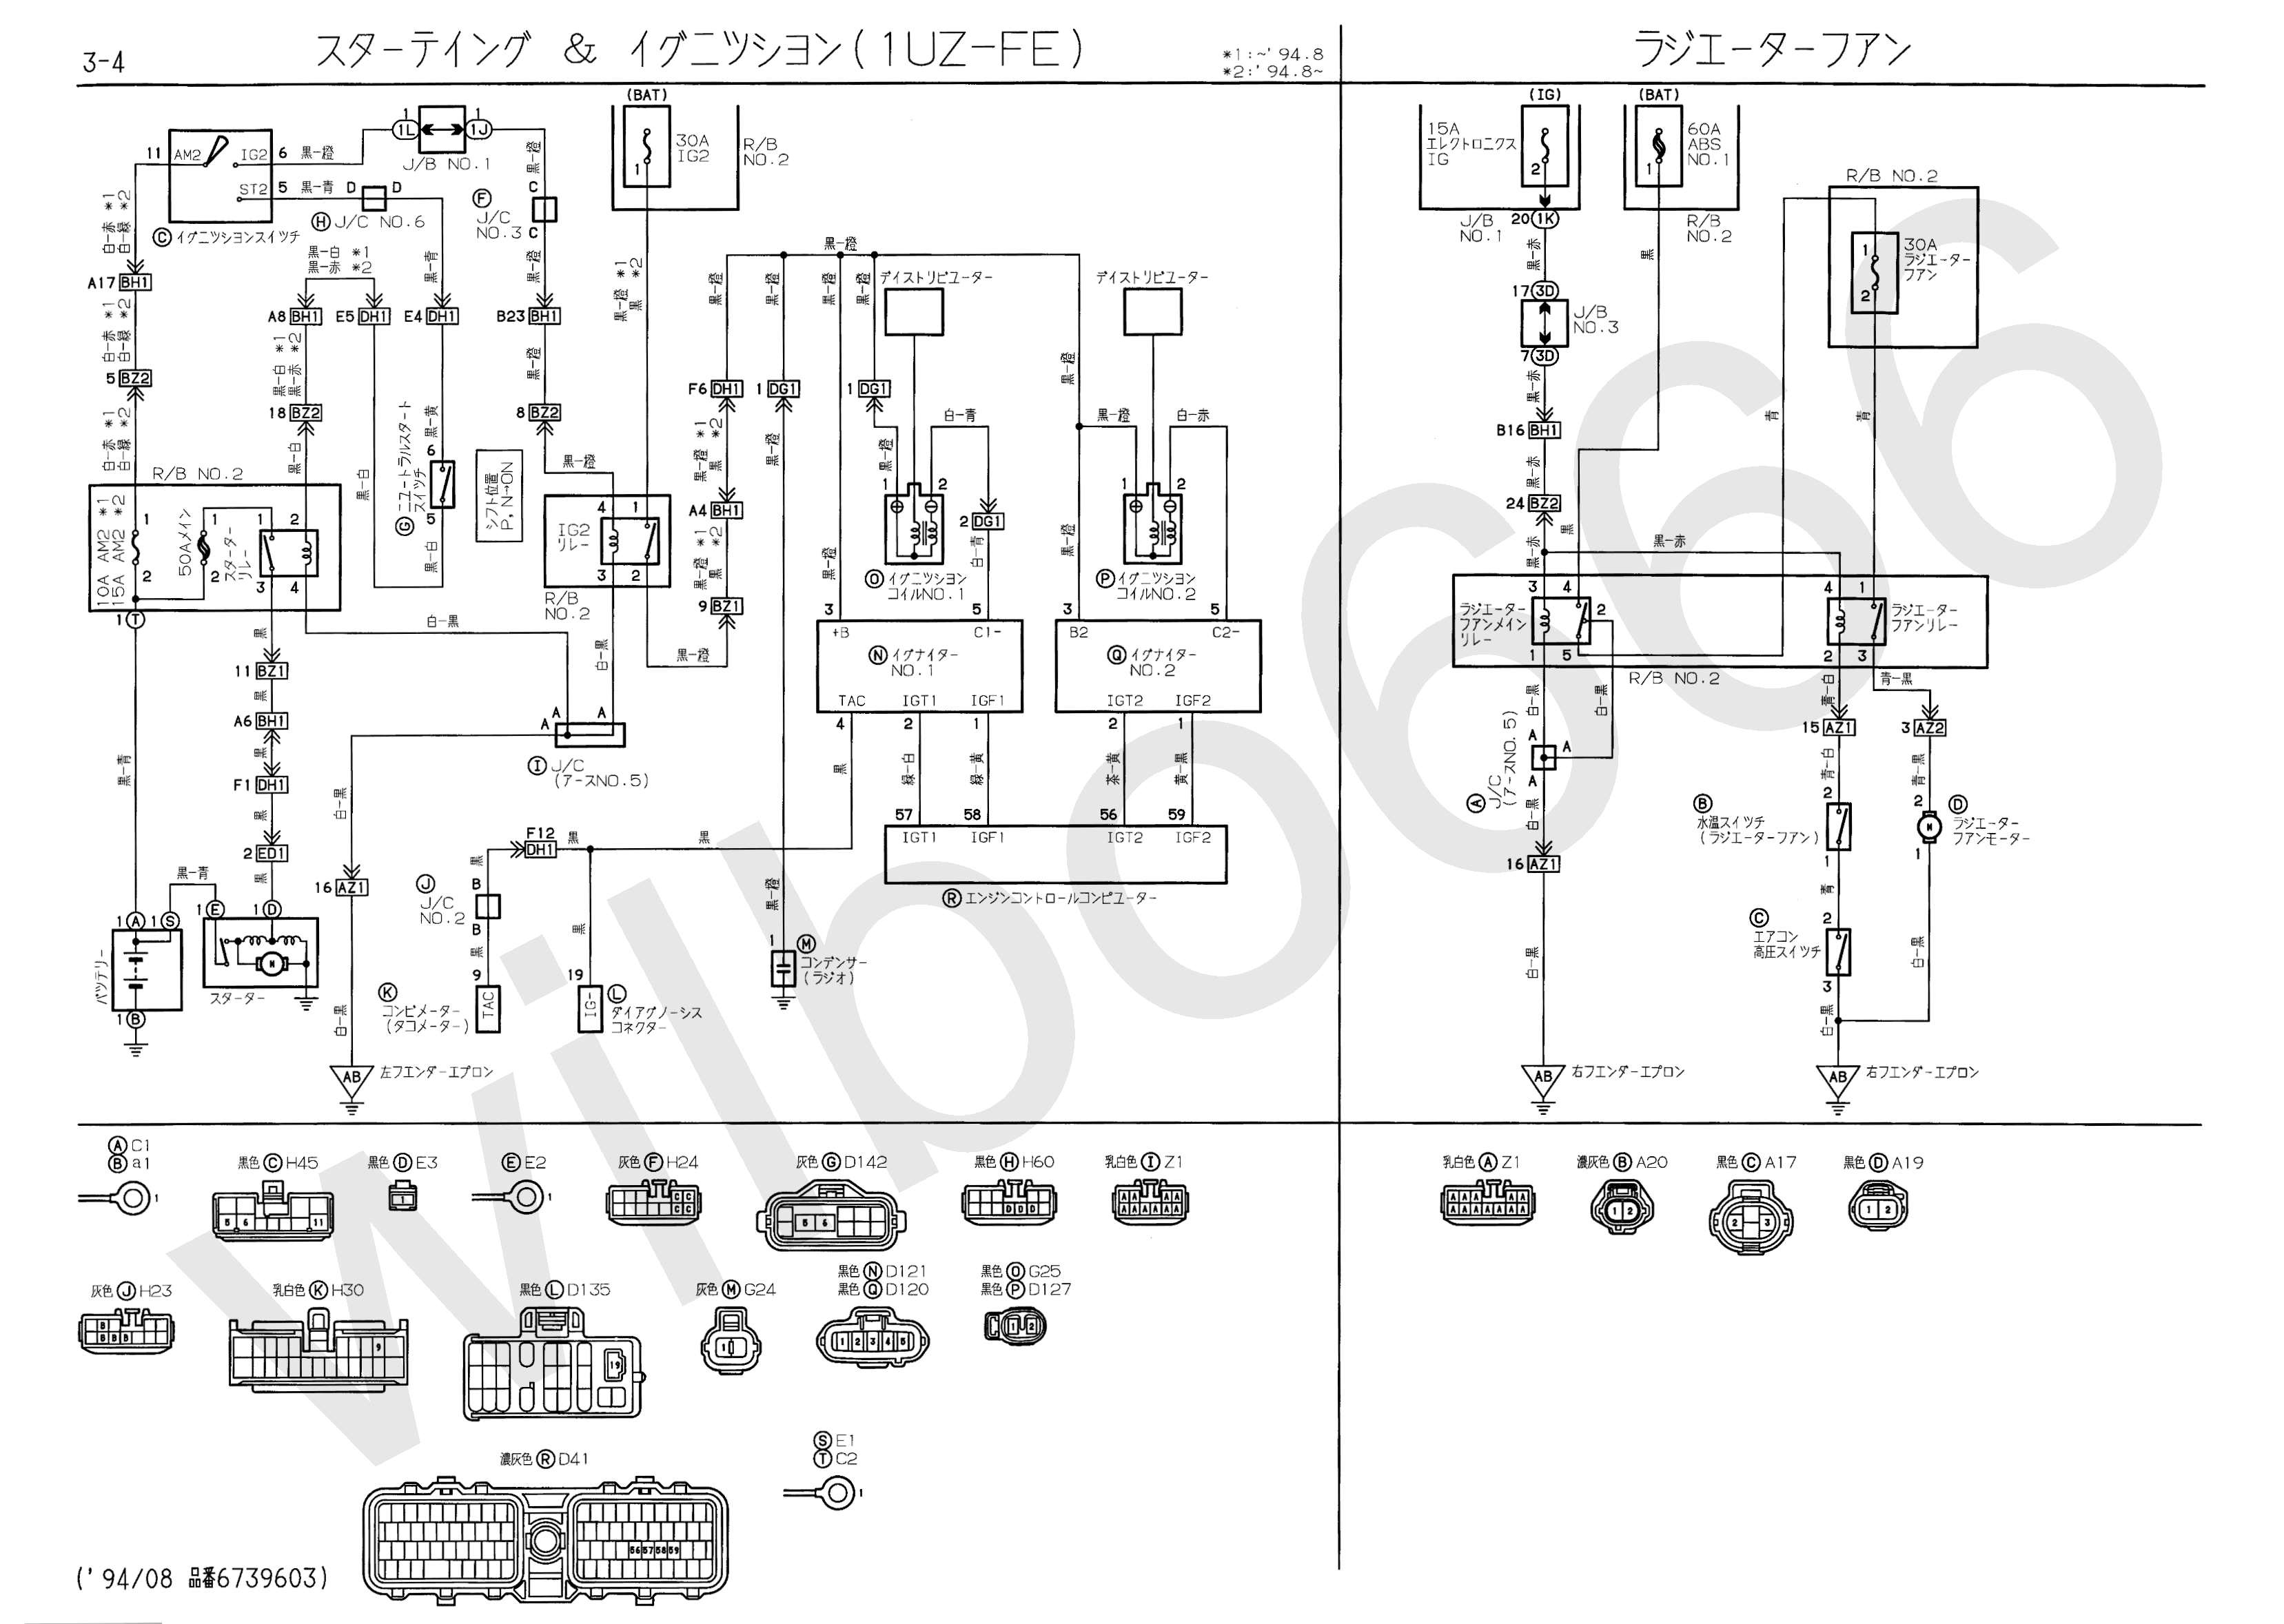 91 240sx knock sensor wiring diagram  91  free engine 1993 BMW 740 Knock Sensor Wiring Diagram Bosch Knock Sensor Wiring Diagram